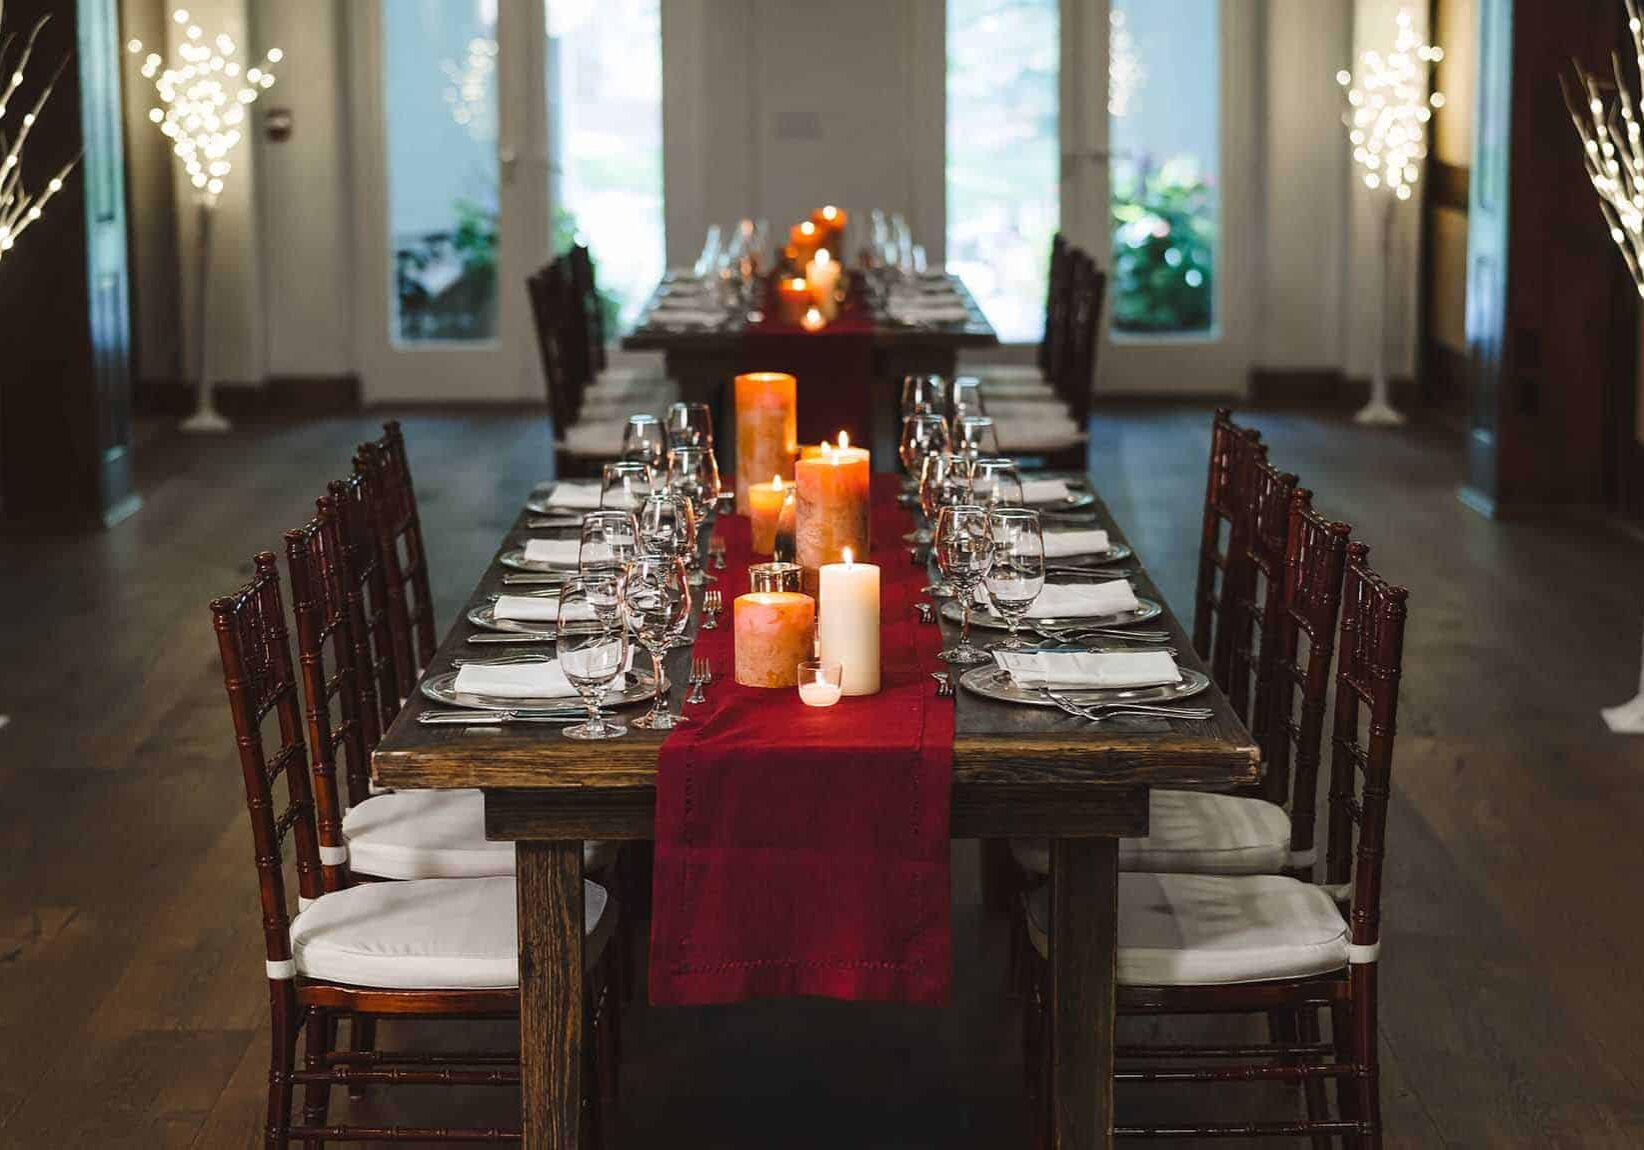 Allgau restaurant tables with placesettings